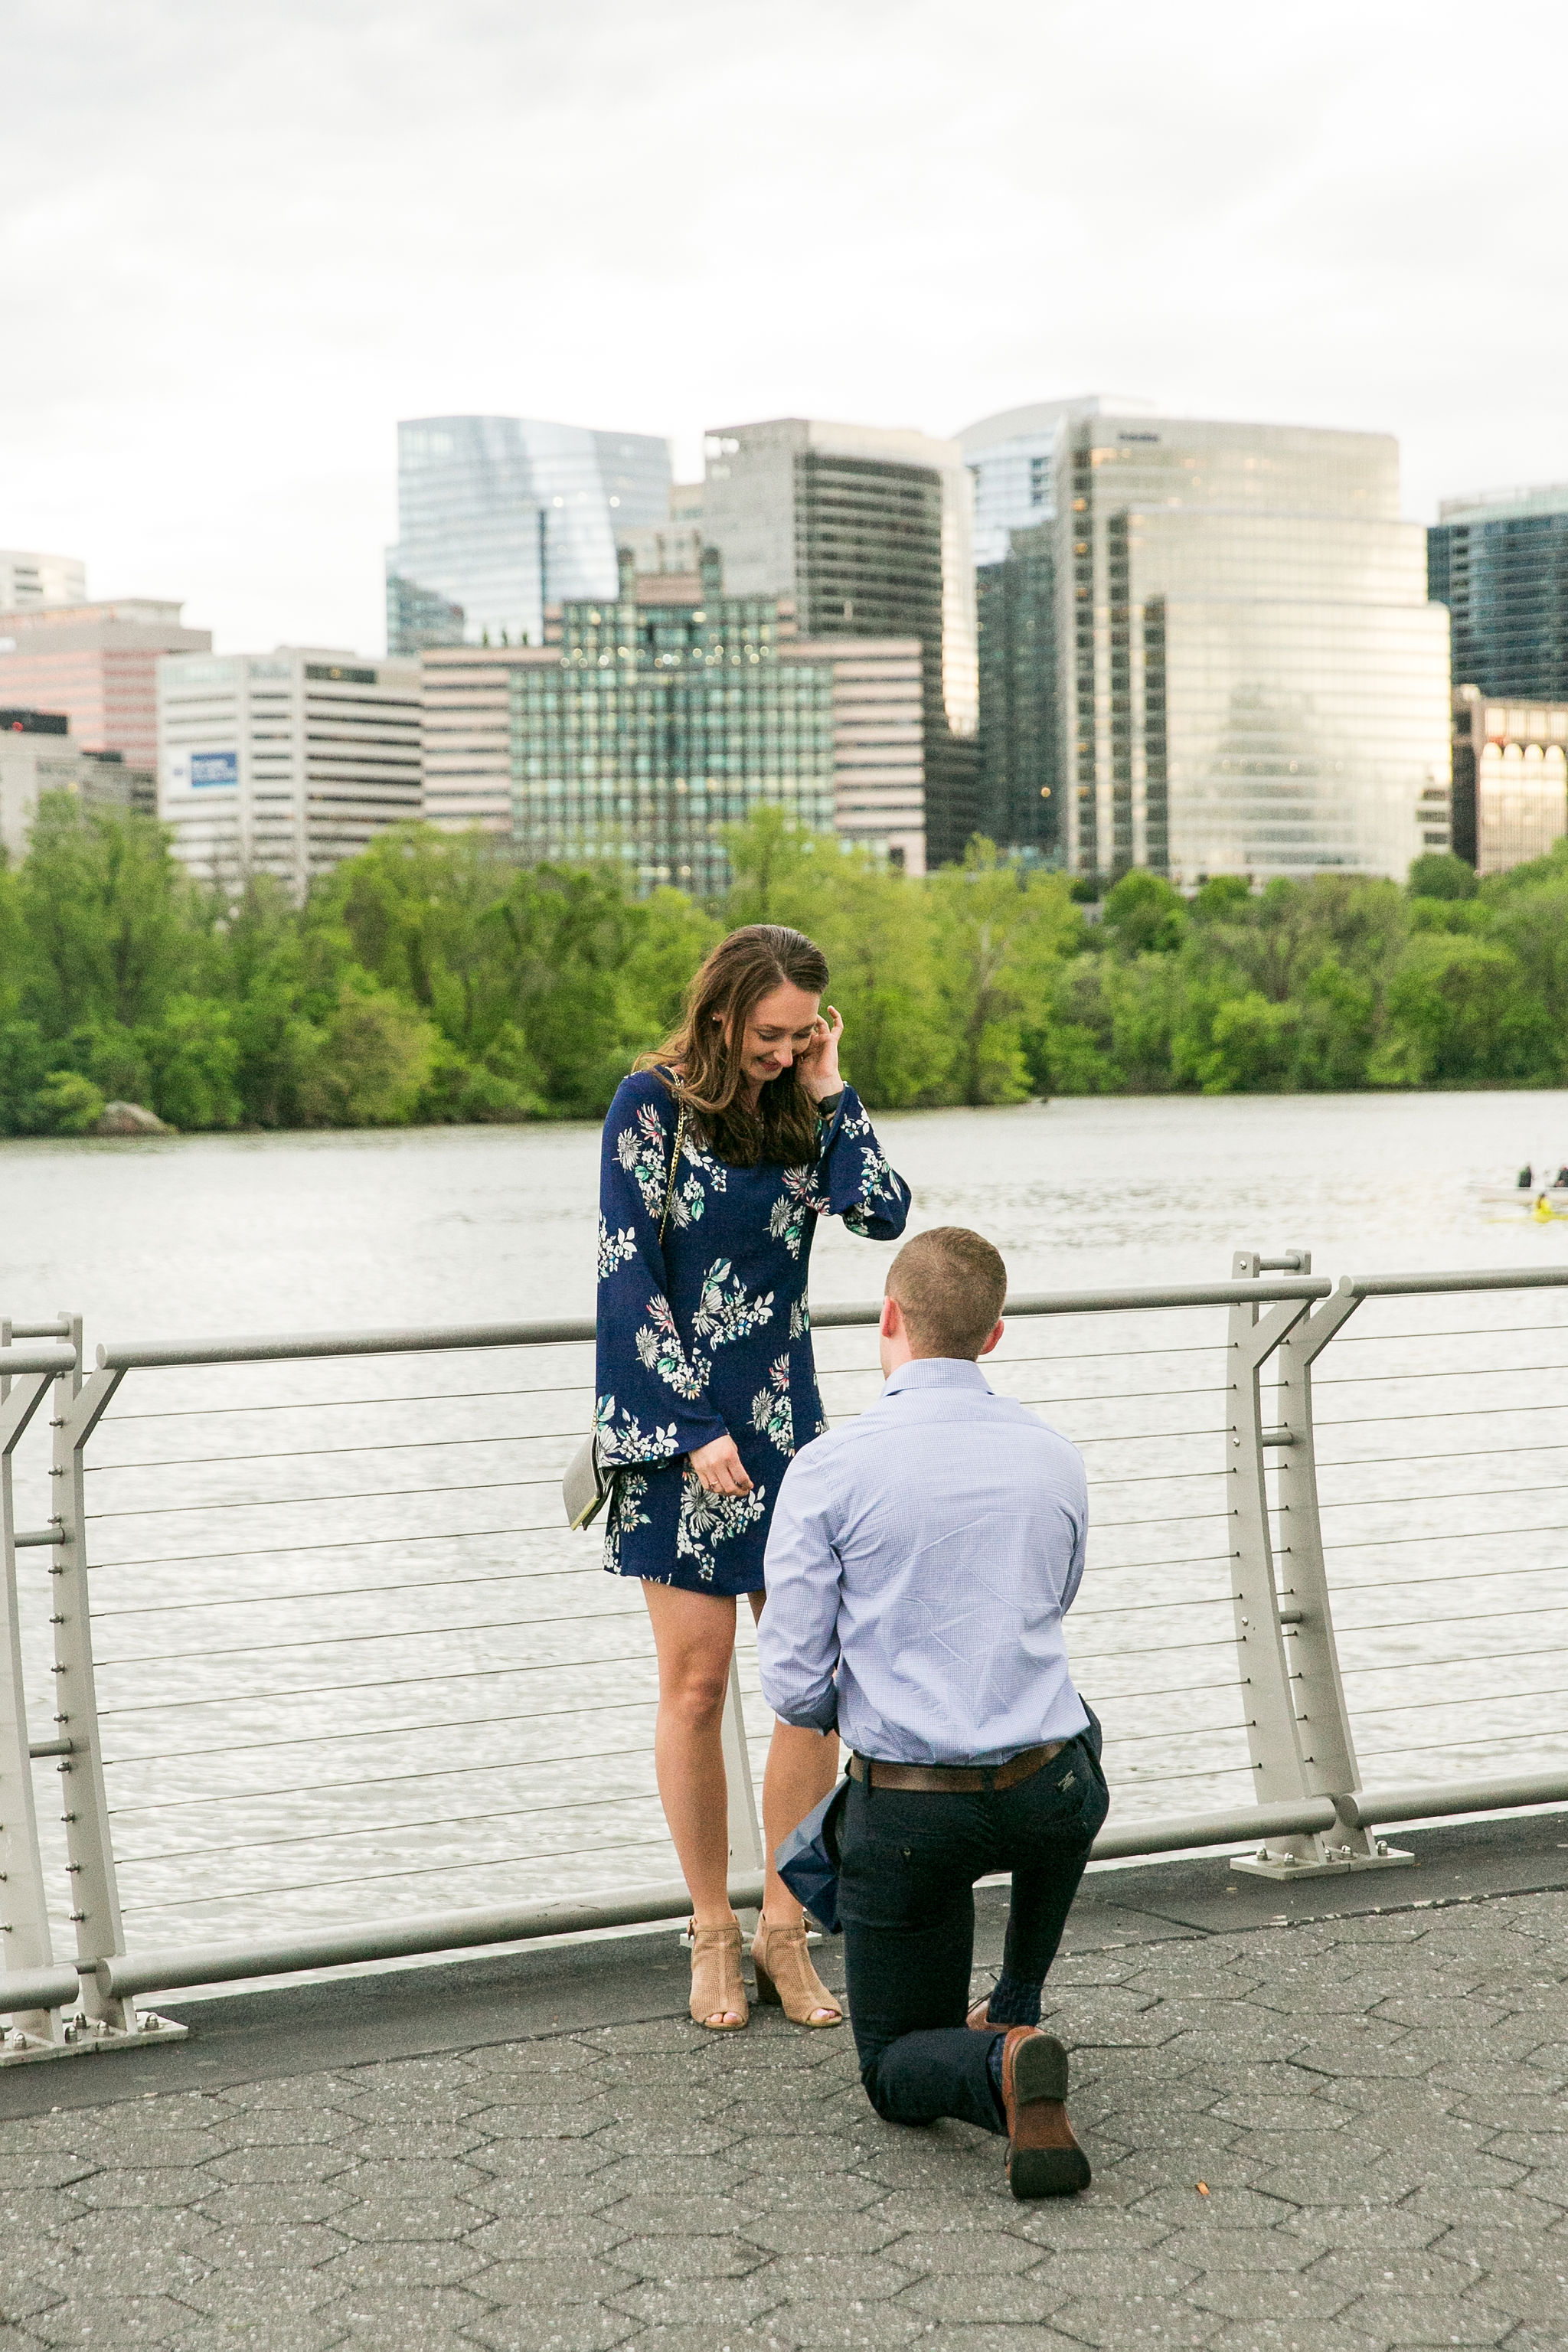 Georgetown-Waterfront-Surpirse-Marriage-Proposal